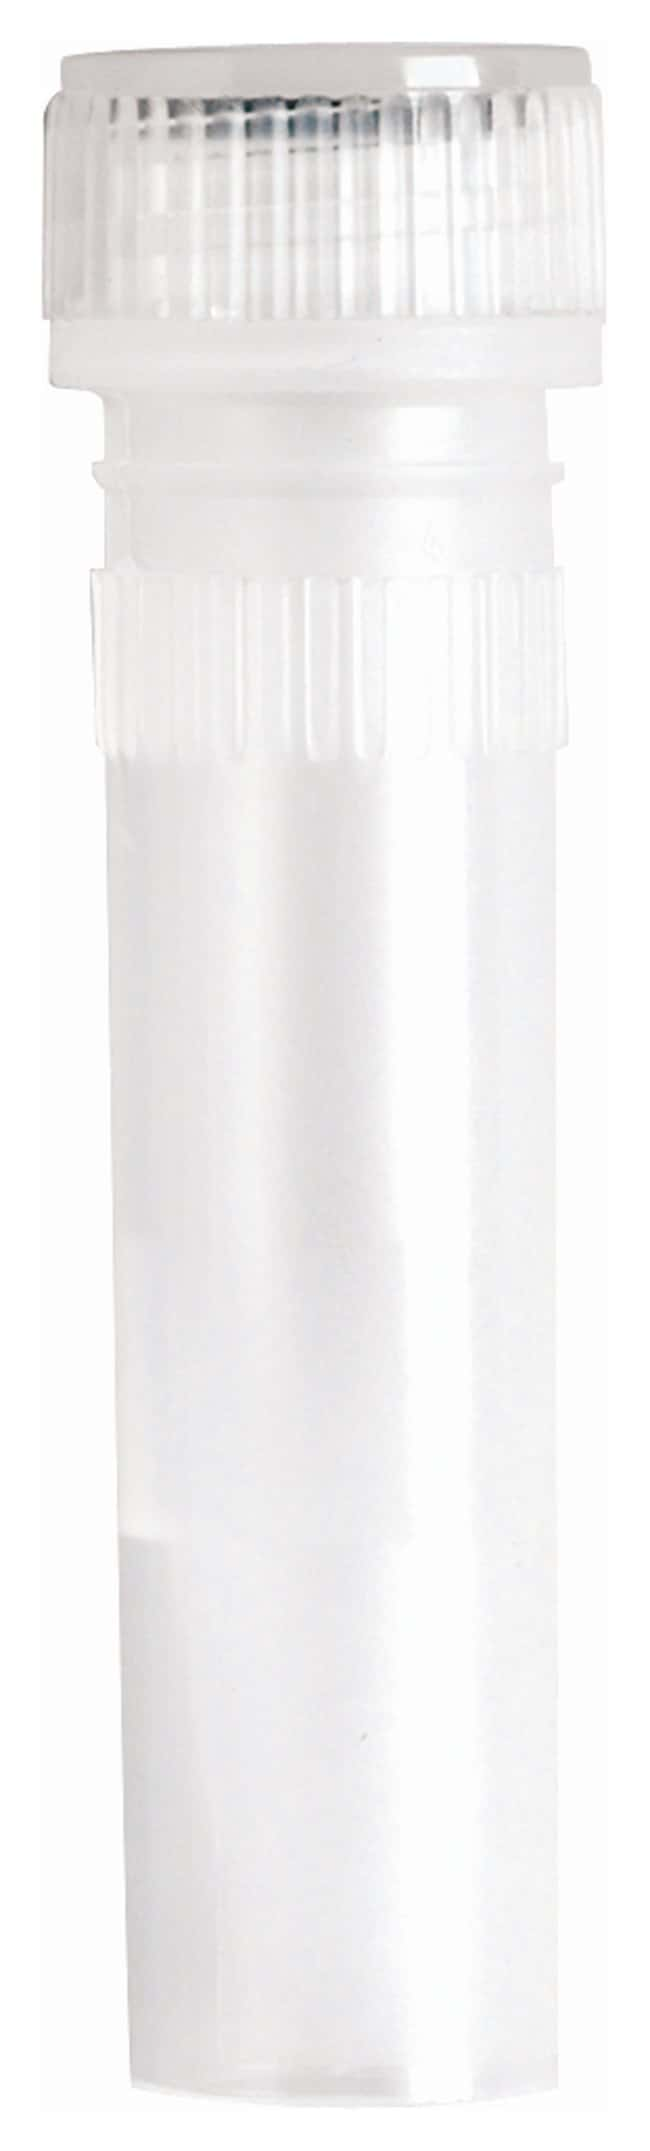 Fisherbrand™Nonsterile  Threaded End Microcentrifuge Tube without Caps Skirted-bottom; Max. Force: 18,000xG; Capacity: 1.5mL; Color: Natural Fisherbrand™Nonsterile  Threaded End Microcentrifuge Tube without Caps